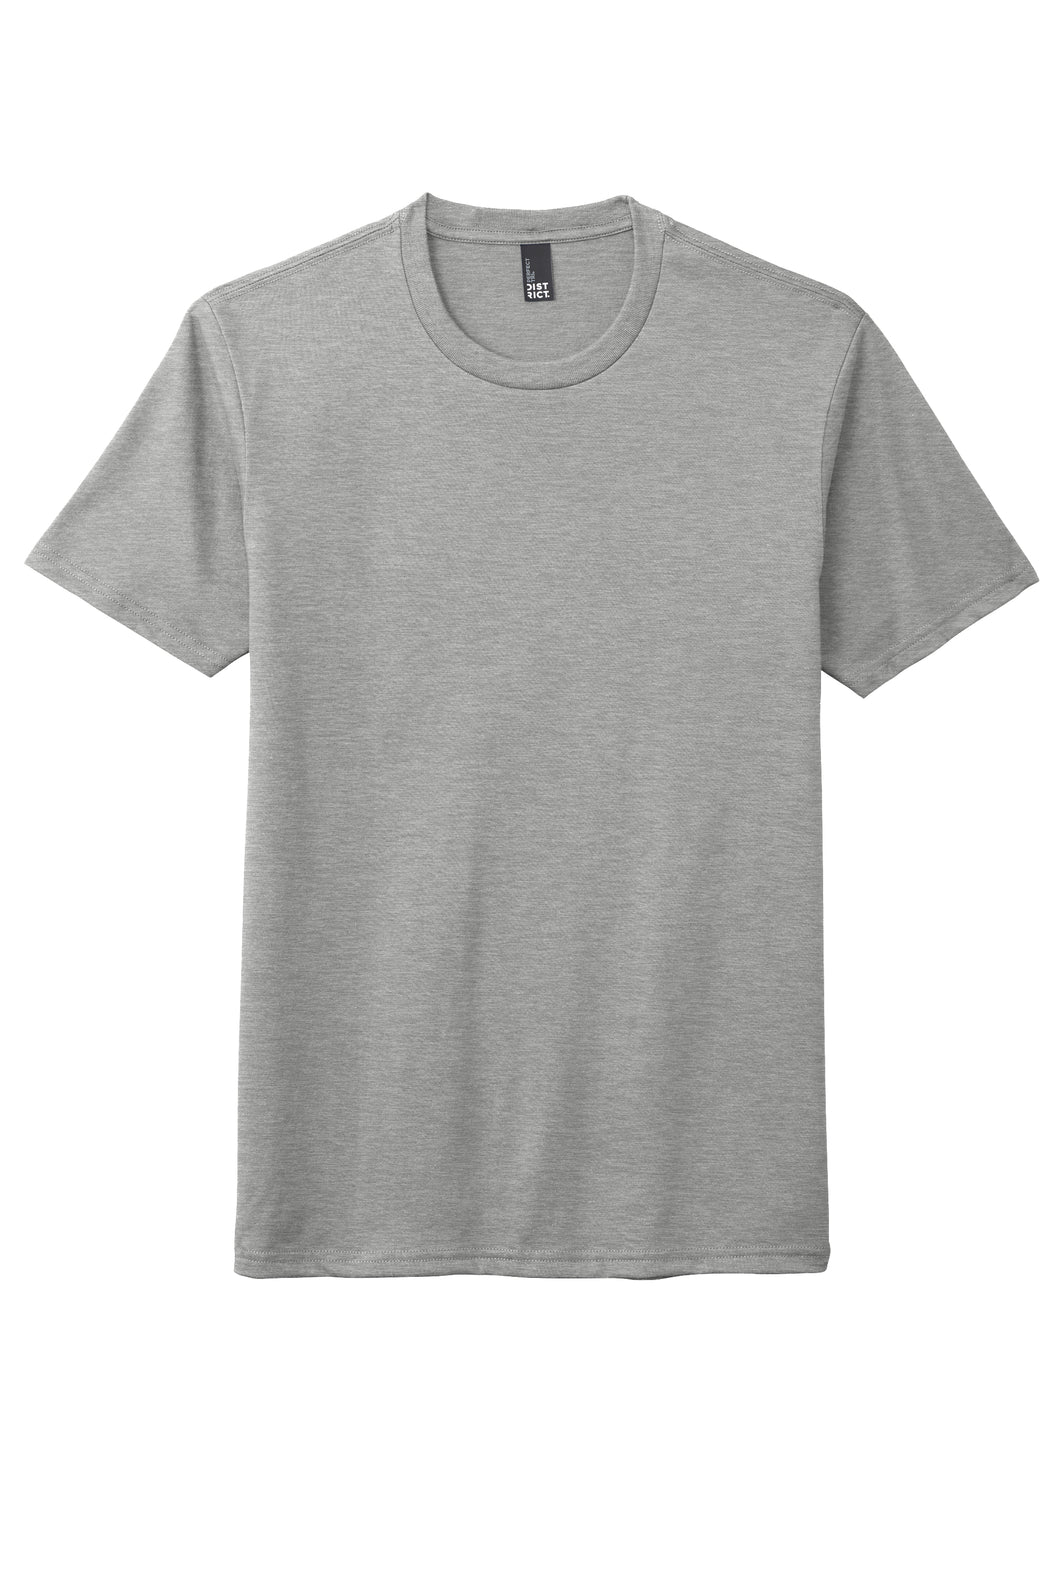 DM130-Heathered Grey